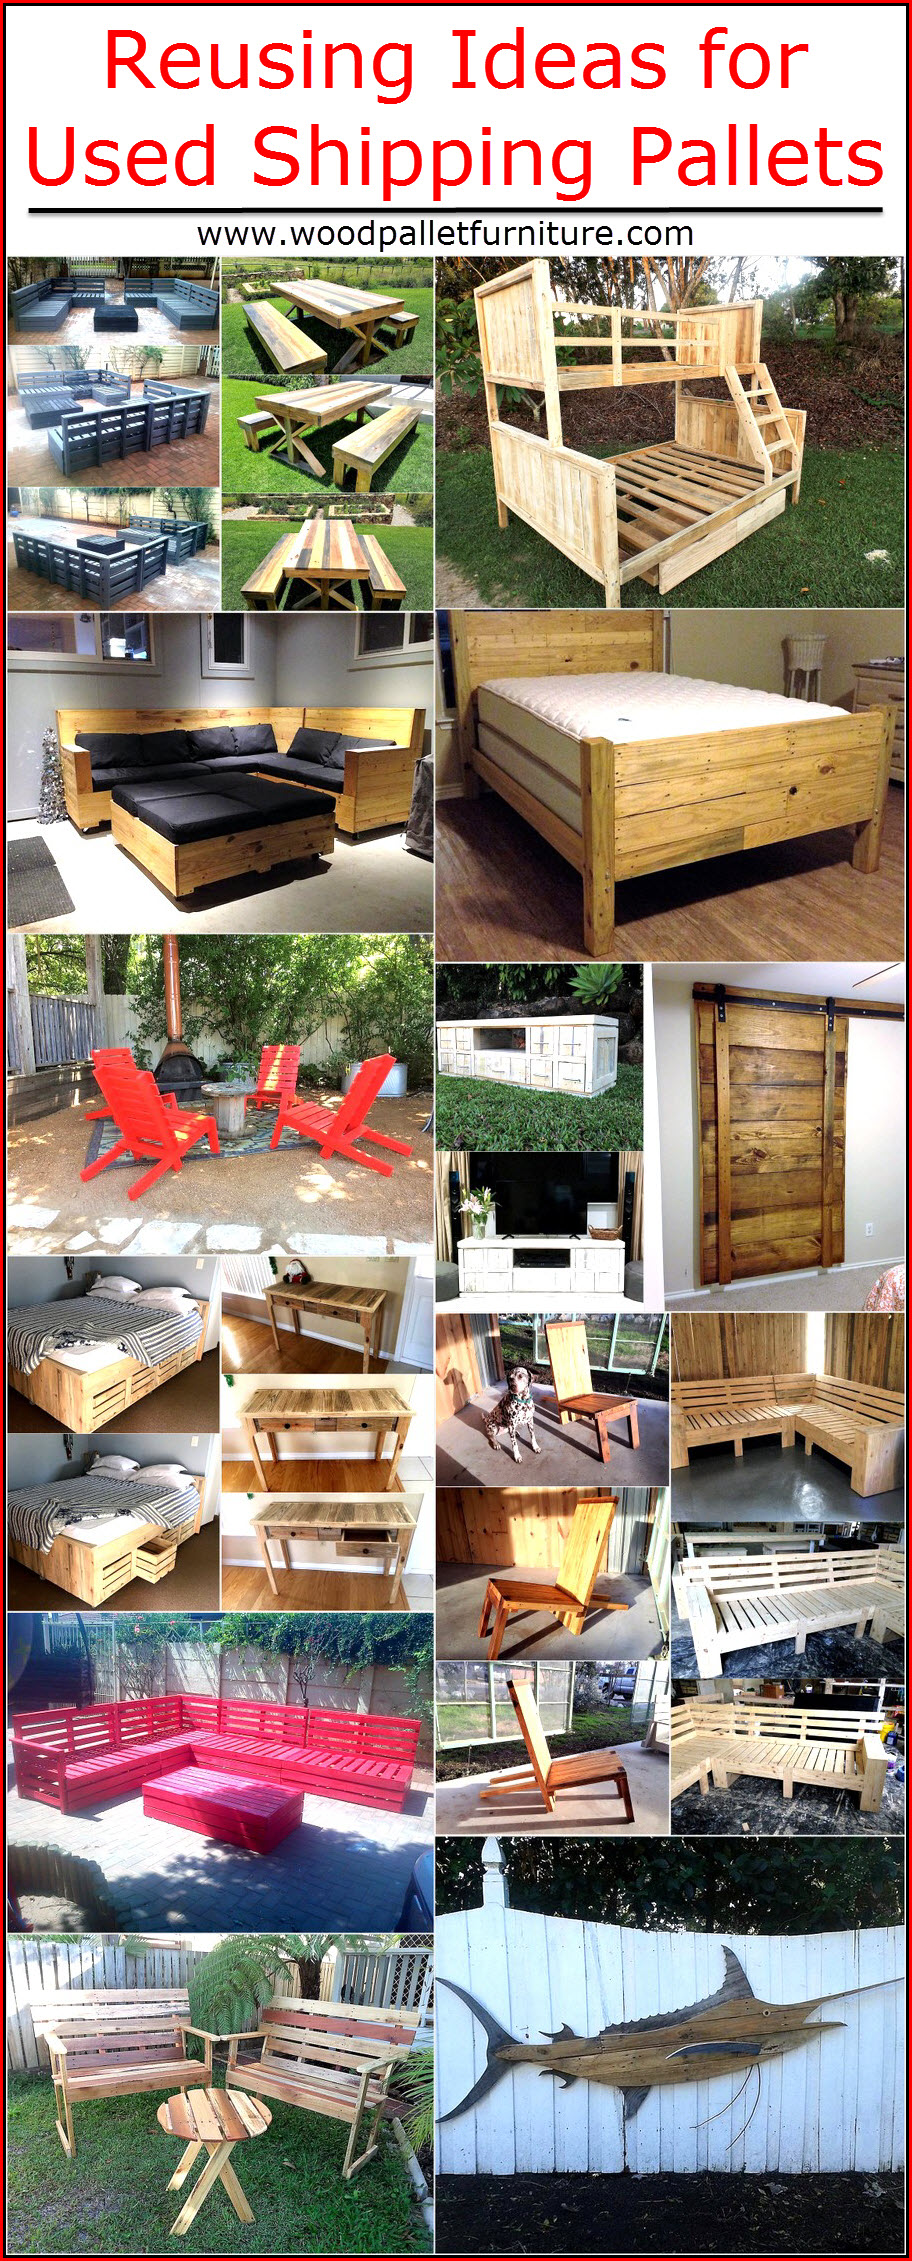 shipping pallet furniture ideas. Reusing-ideas-for-used-shipping-pallets Shipping Pallet Furniture Ideas A